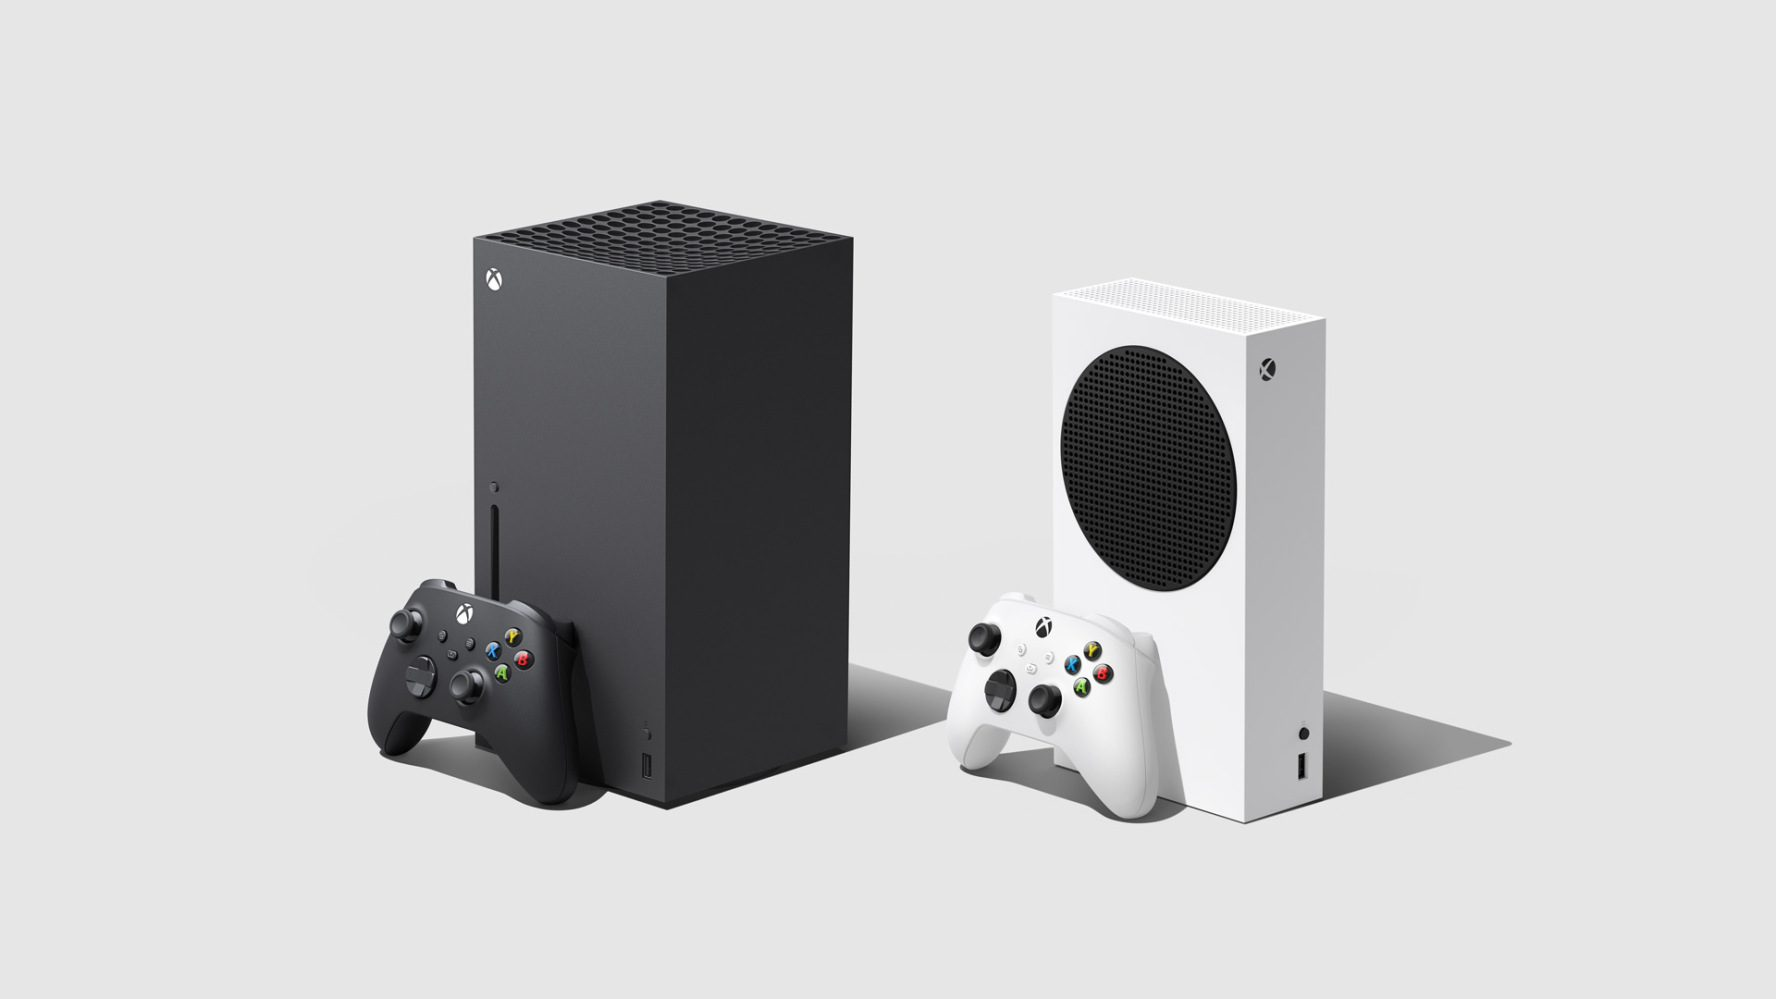 Xbox Series X and S.